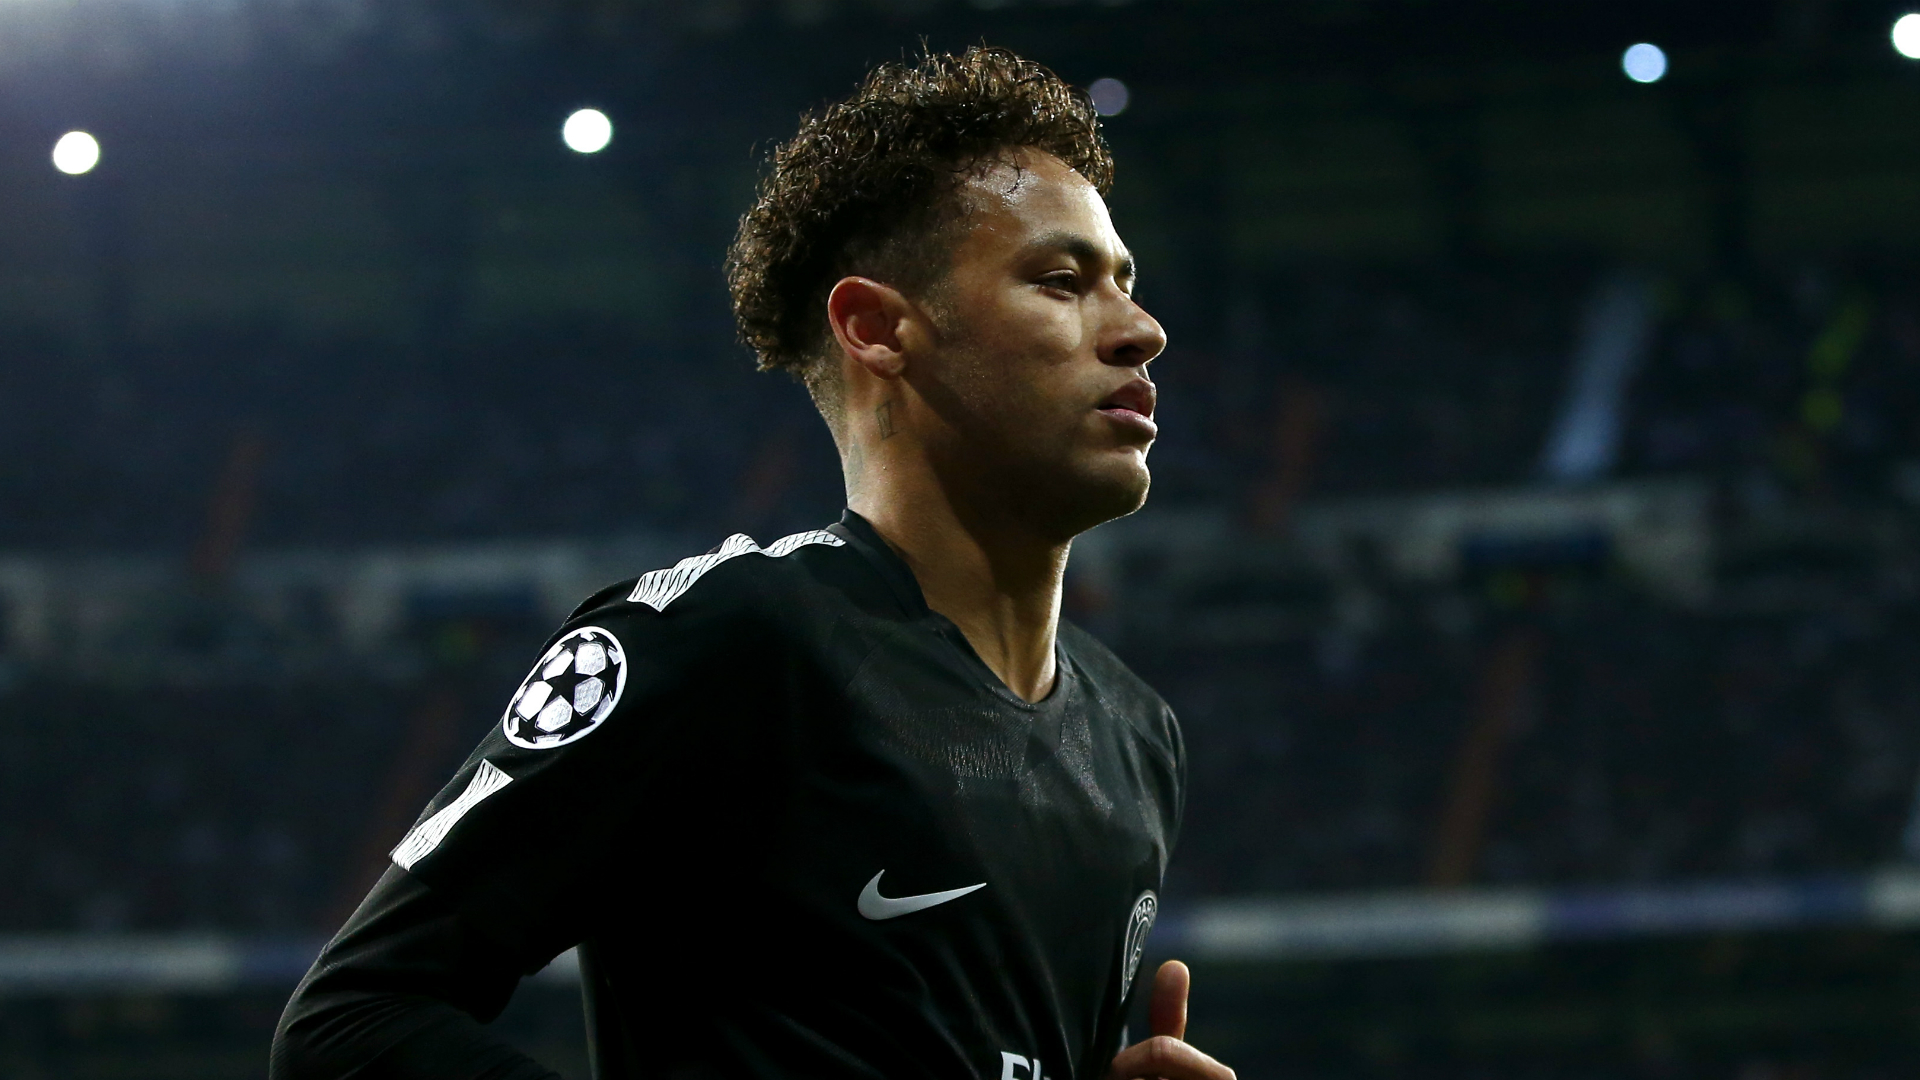 UEFA Investigates Neymar's Insults Aimed at UCL Video Officials